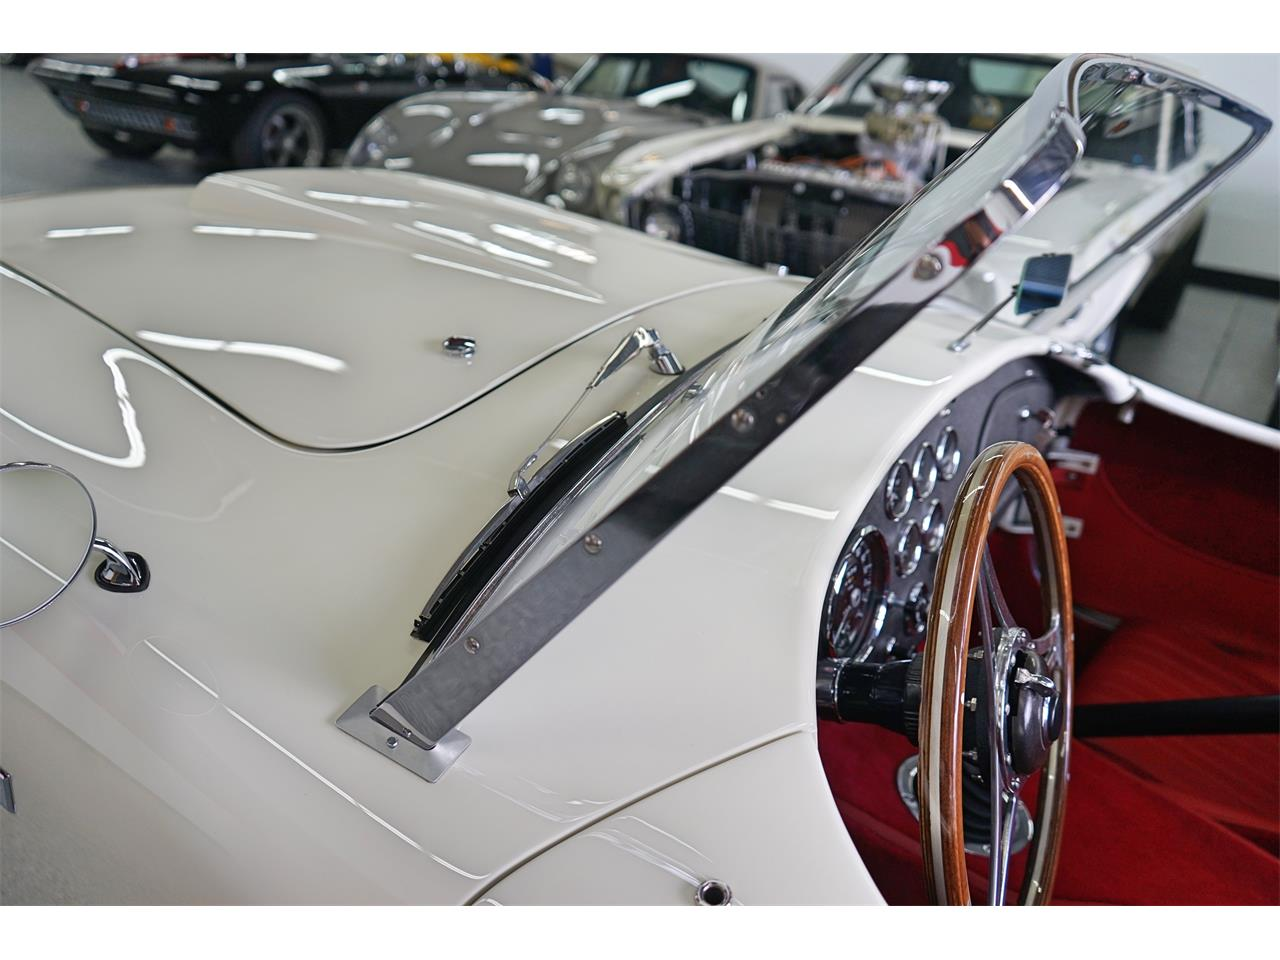 Large Picture of Classic '56 Cobra located in Boise Idaho - $499,995.00 Offered by a Private Seller - O83G